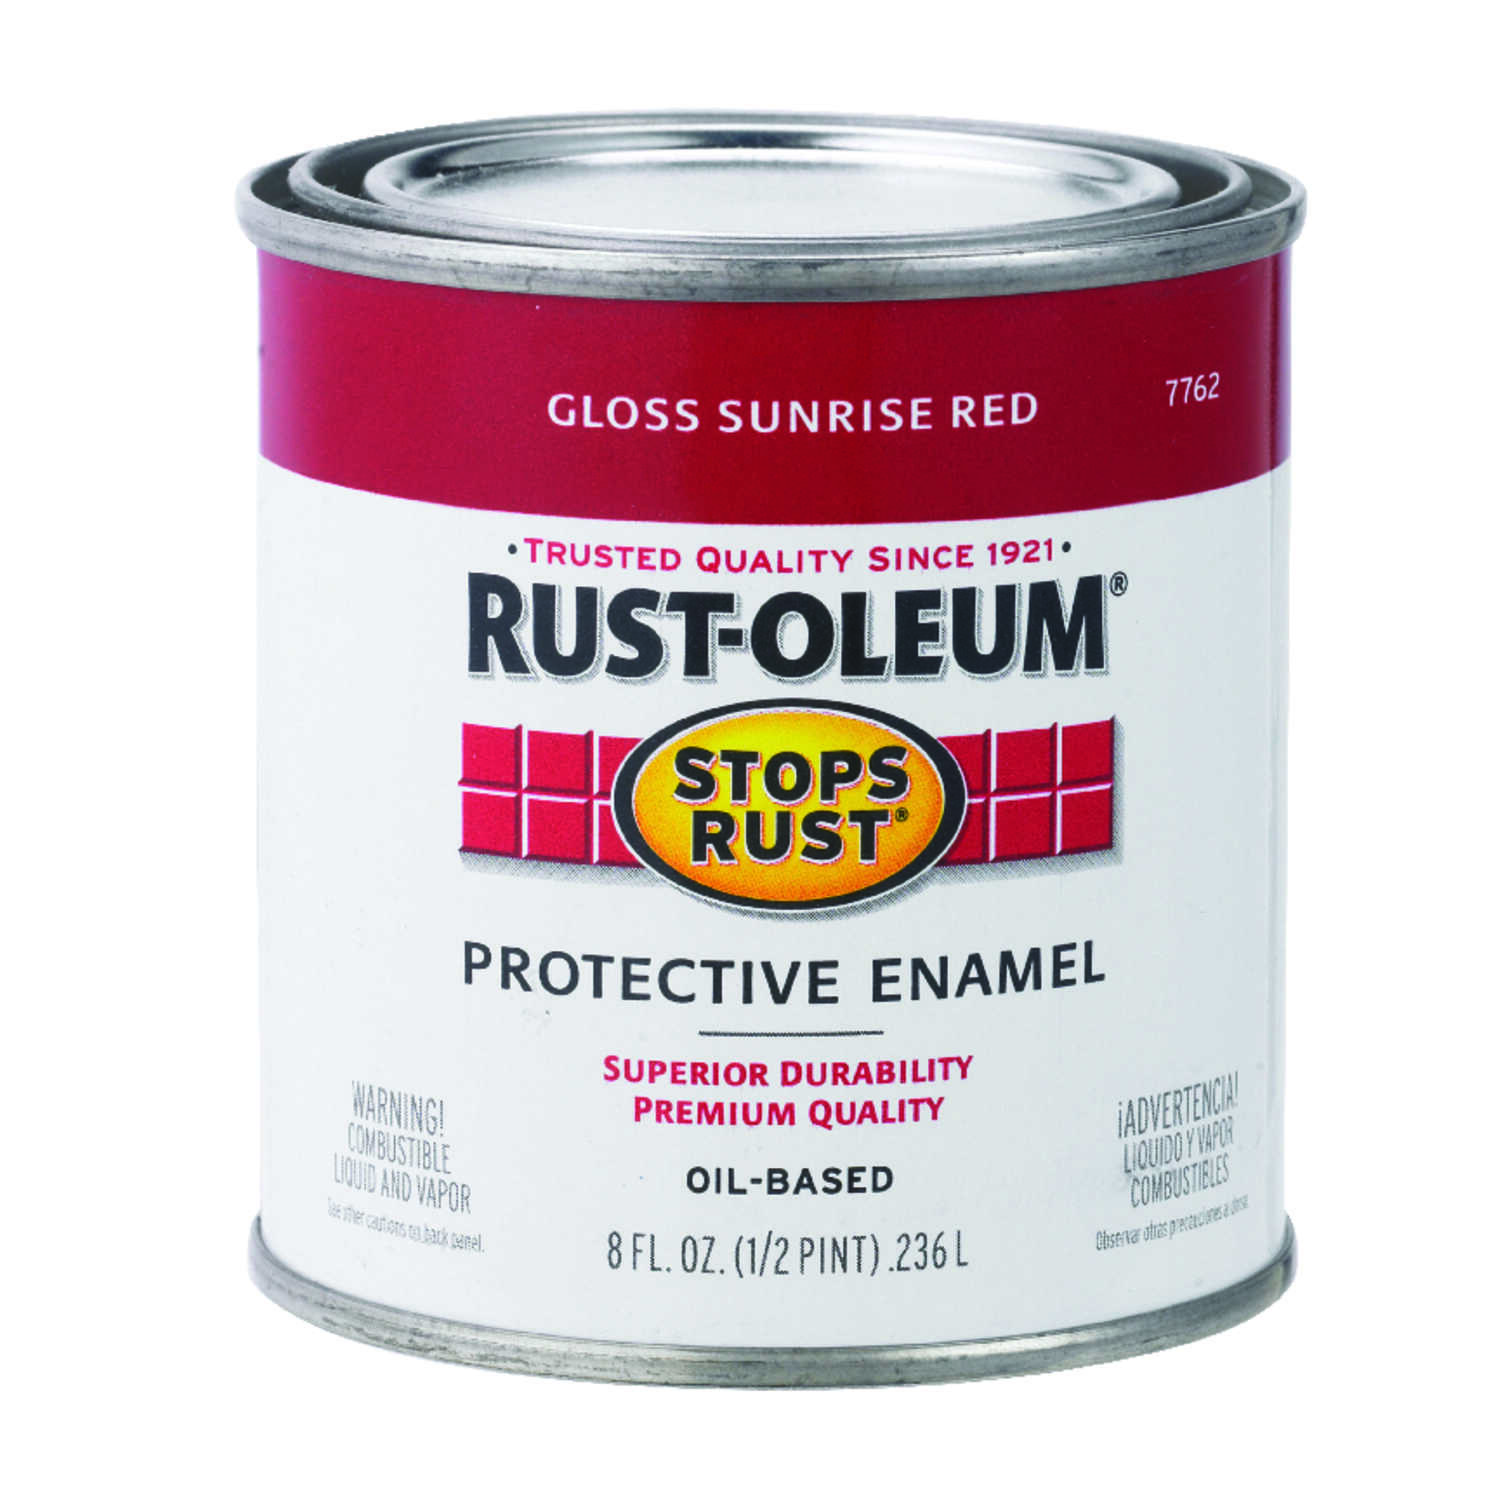 Rust-Oleum  Gloss  Sunrise Red  Indoor and Outdoor  0.5 pt. Protective Enamel